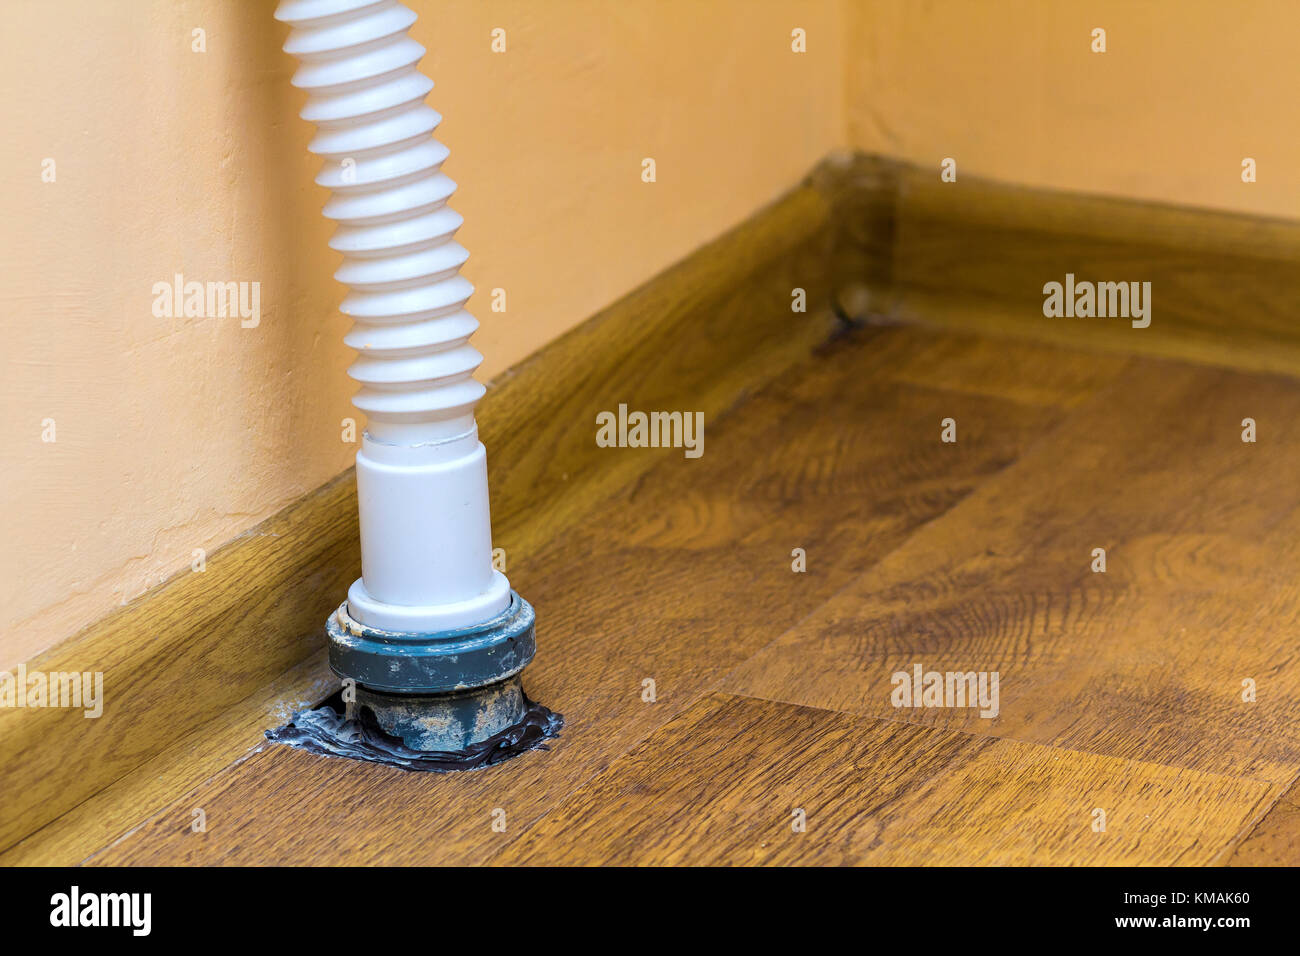 Sewer Drain Pipe Under The Kitchen Sink Stock Photo Alamy